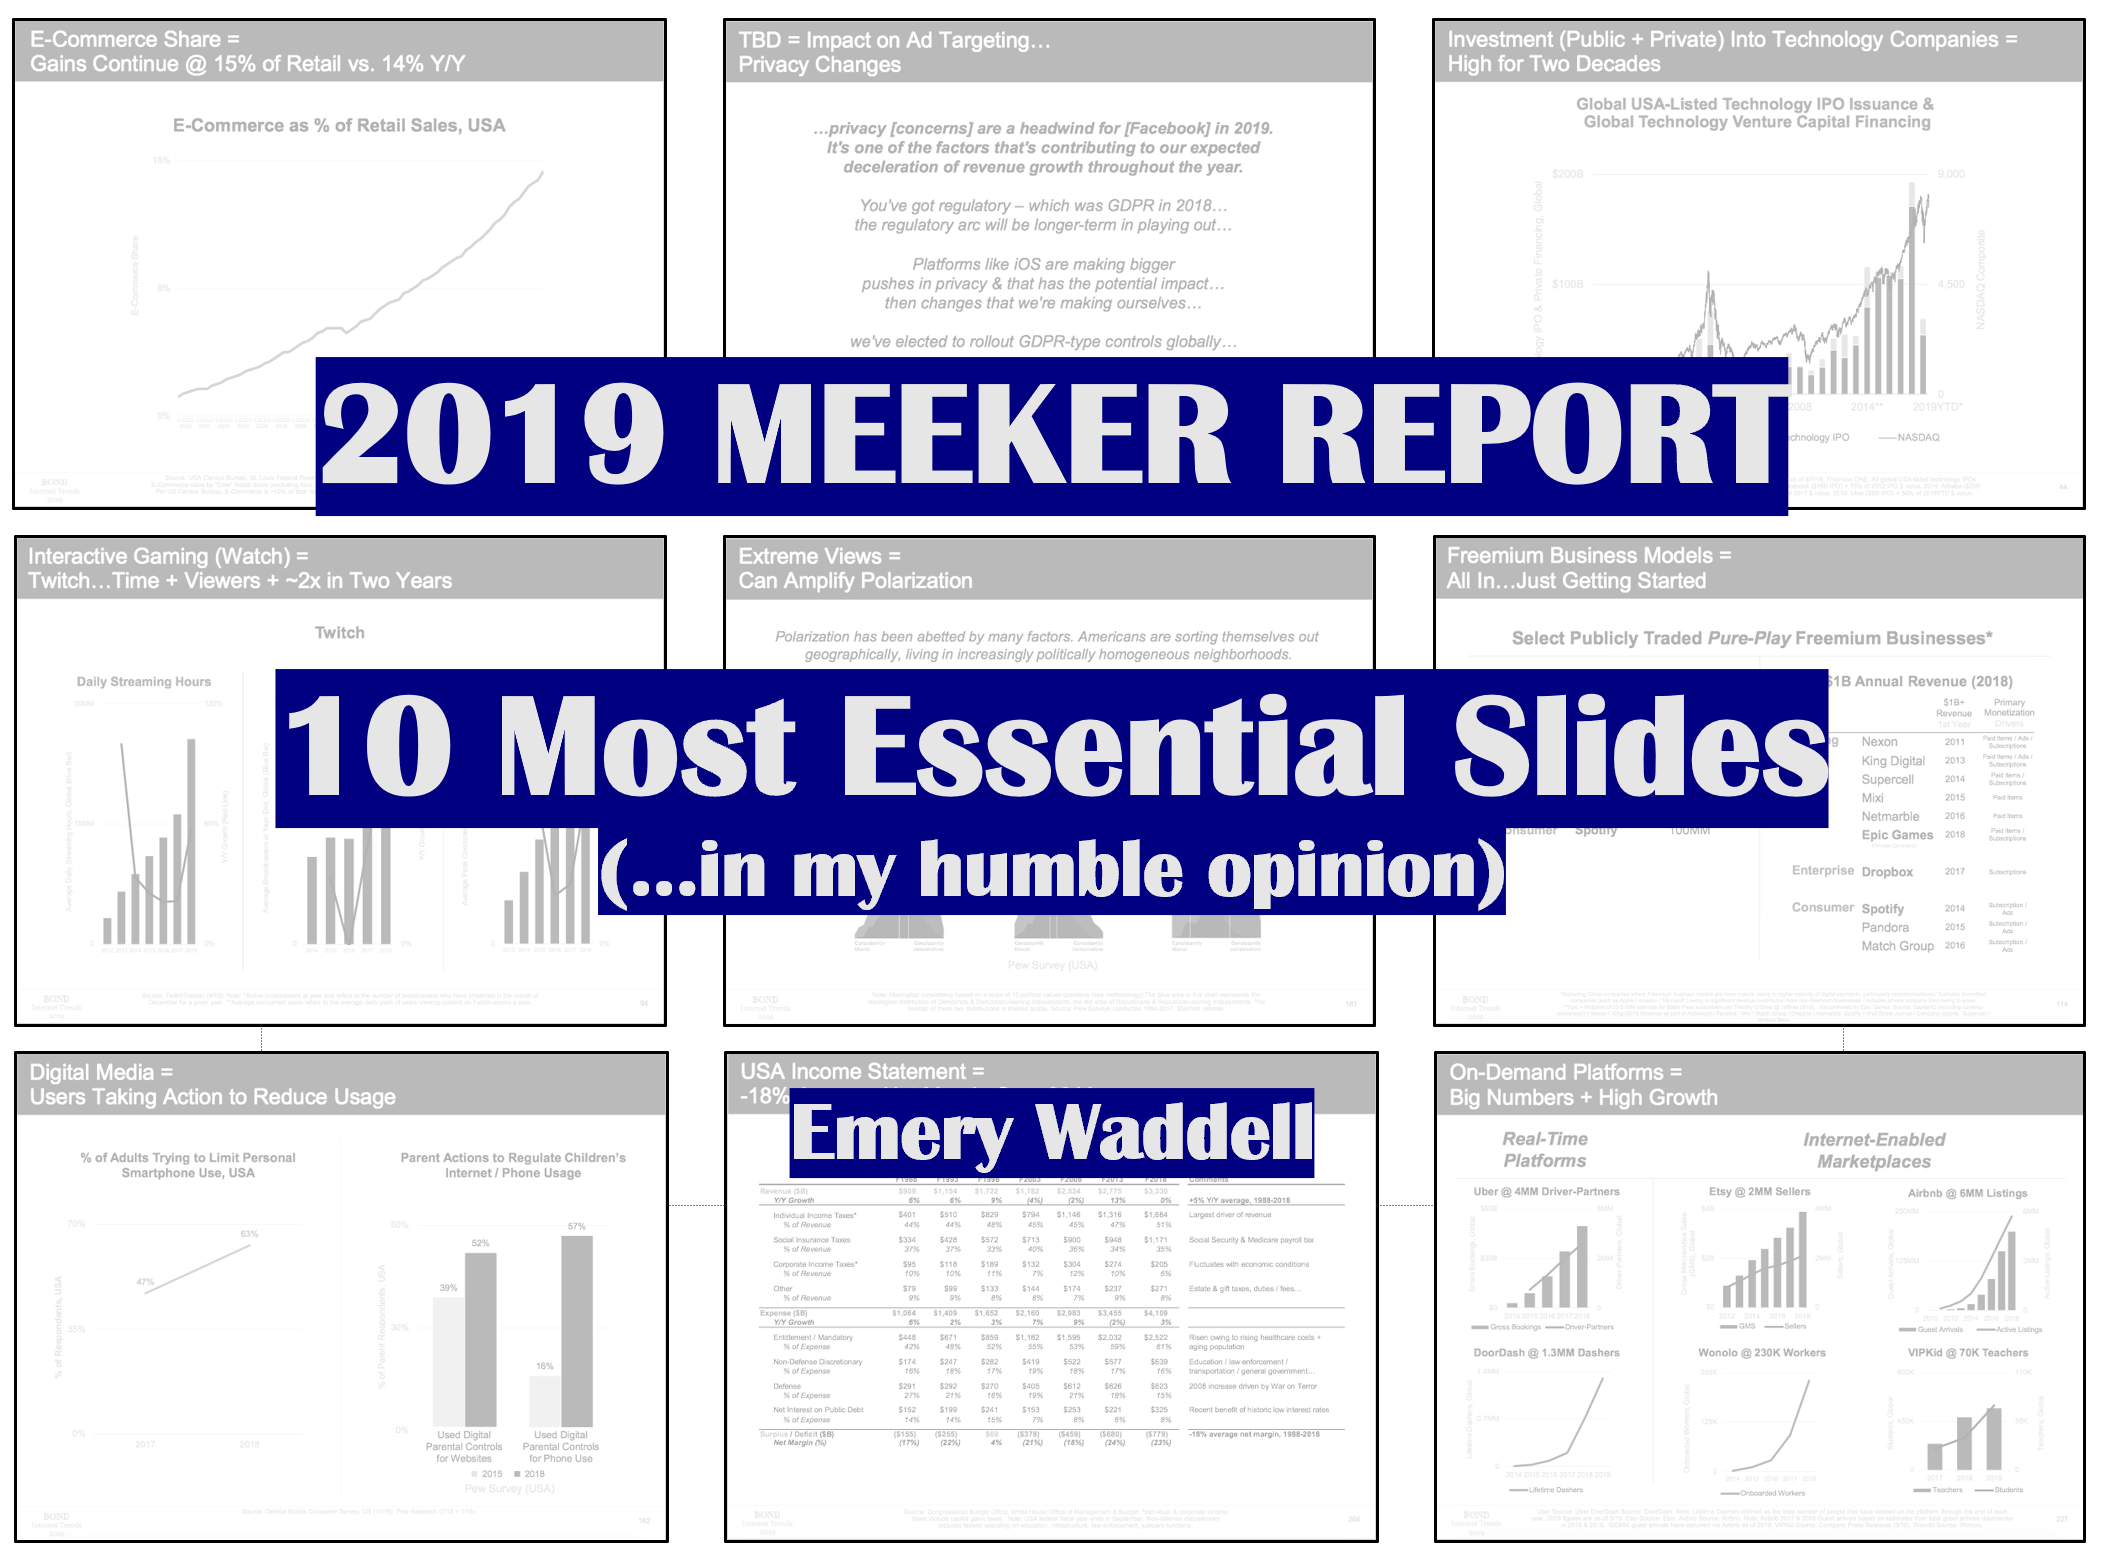 10 Most Essential Slides from 2019 Meeker Report